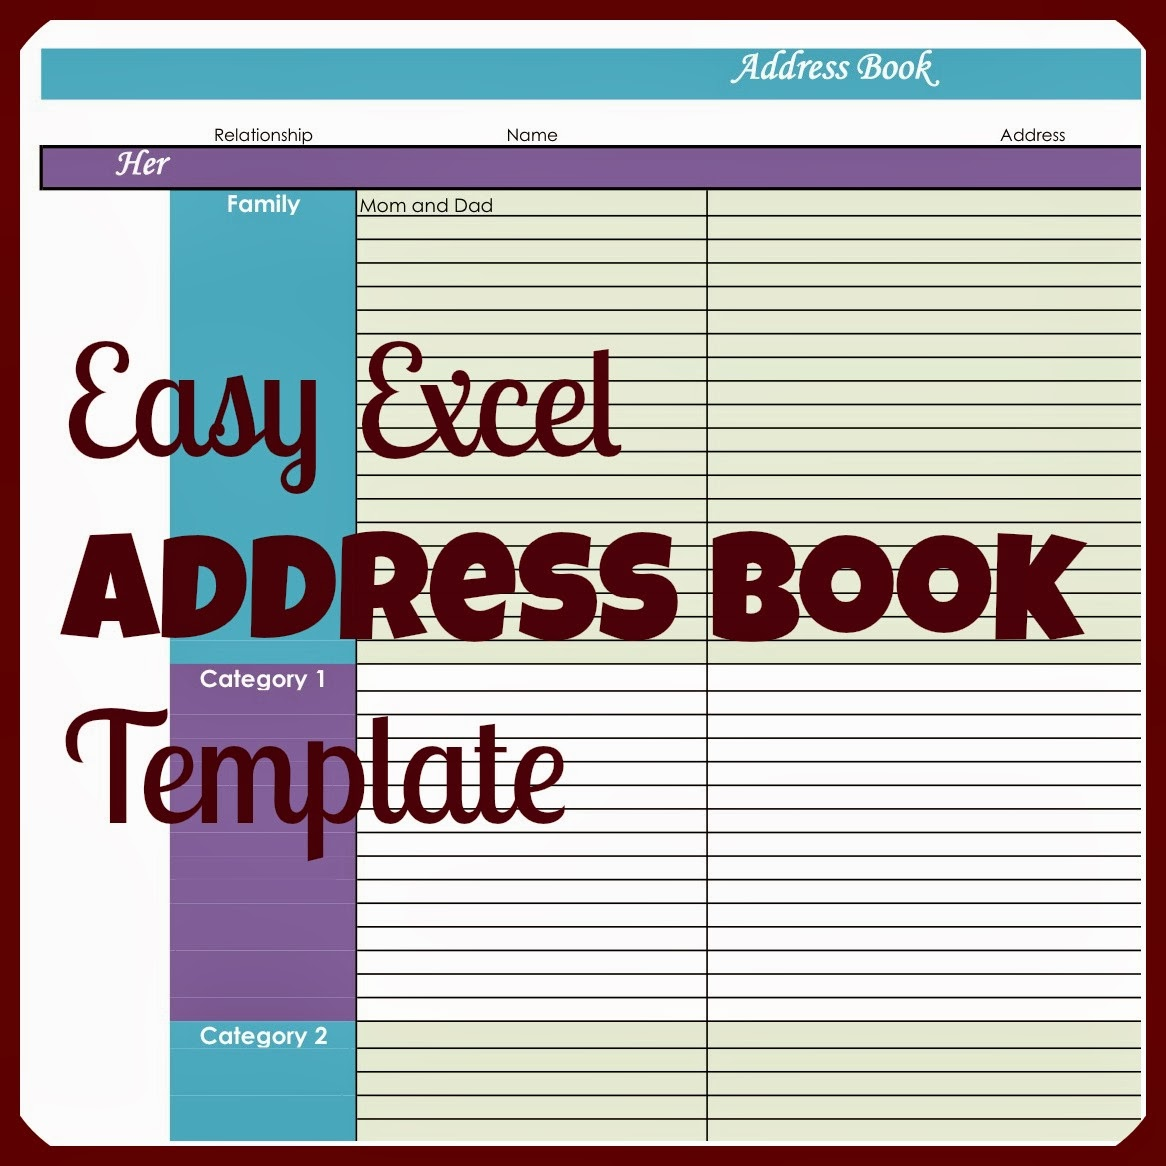 laura 39 s plans easy excel address book template. Black Bedroom Furniture Sets. Home Design Ideas